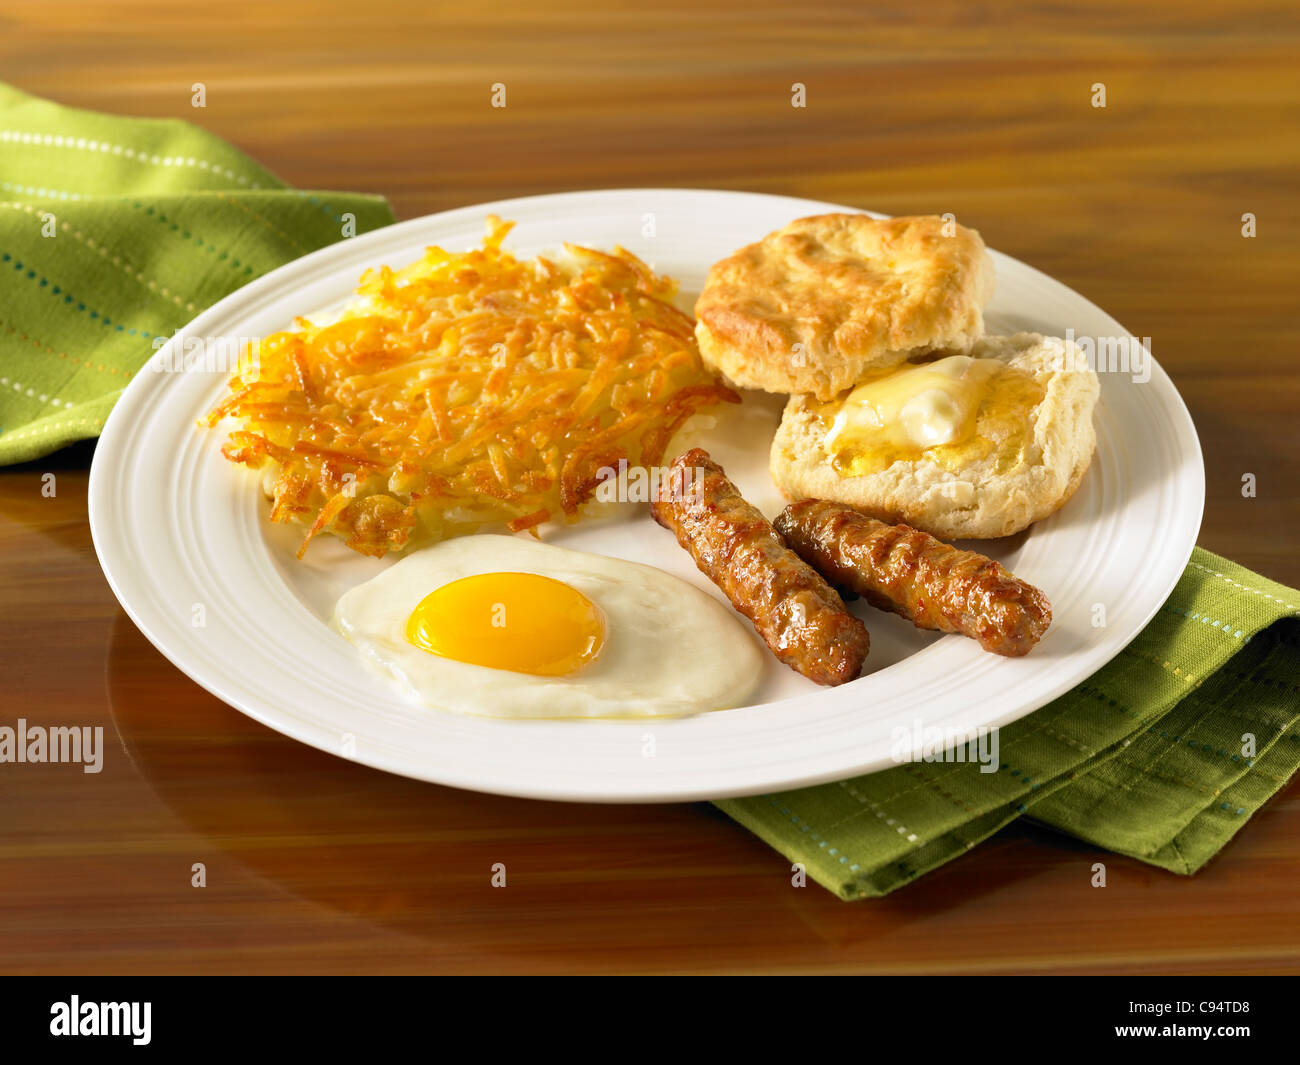 Egg breakfast with hash browns, sausage and biscuits with butter - Stock Image